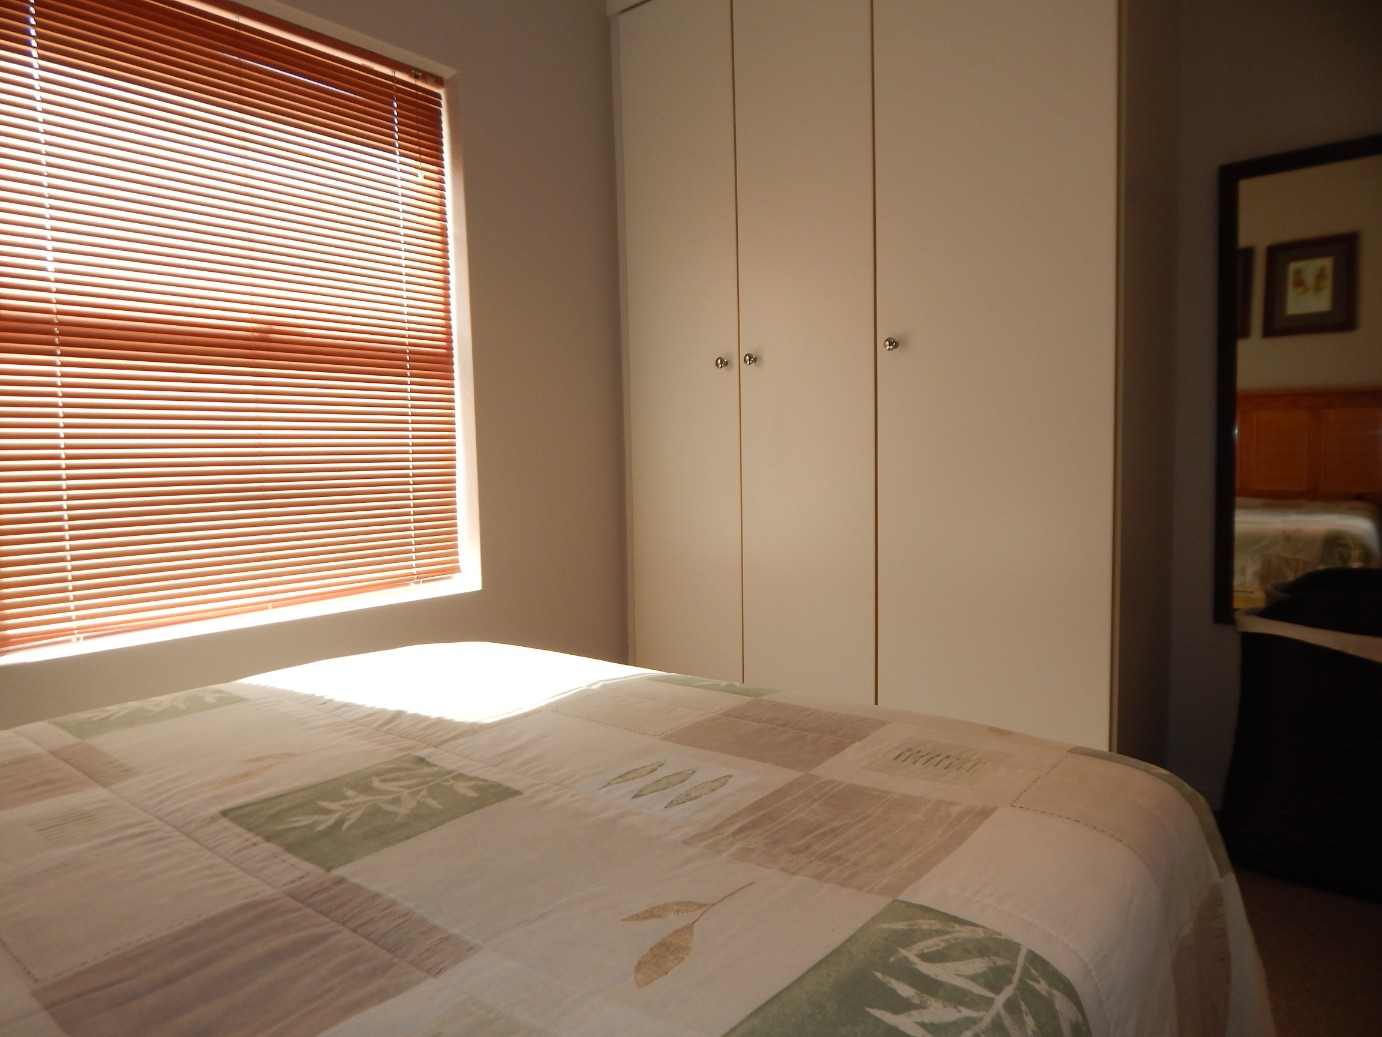 3 Bedroom Apartment for sale in Diaz Beach ENT0080239 : photo#13